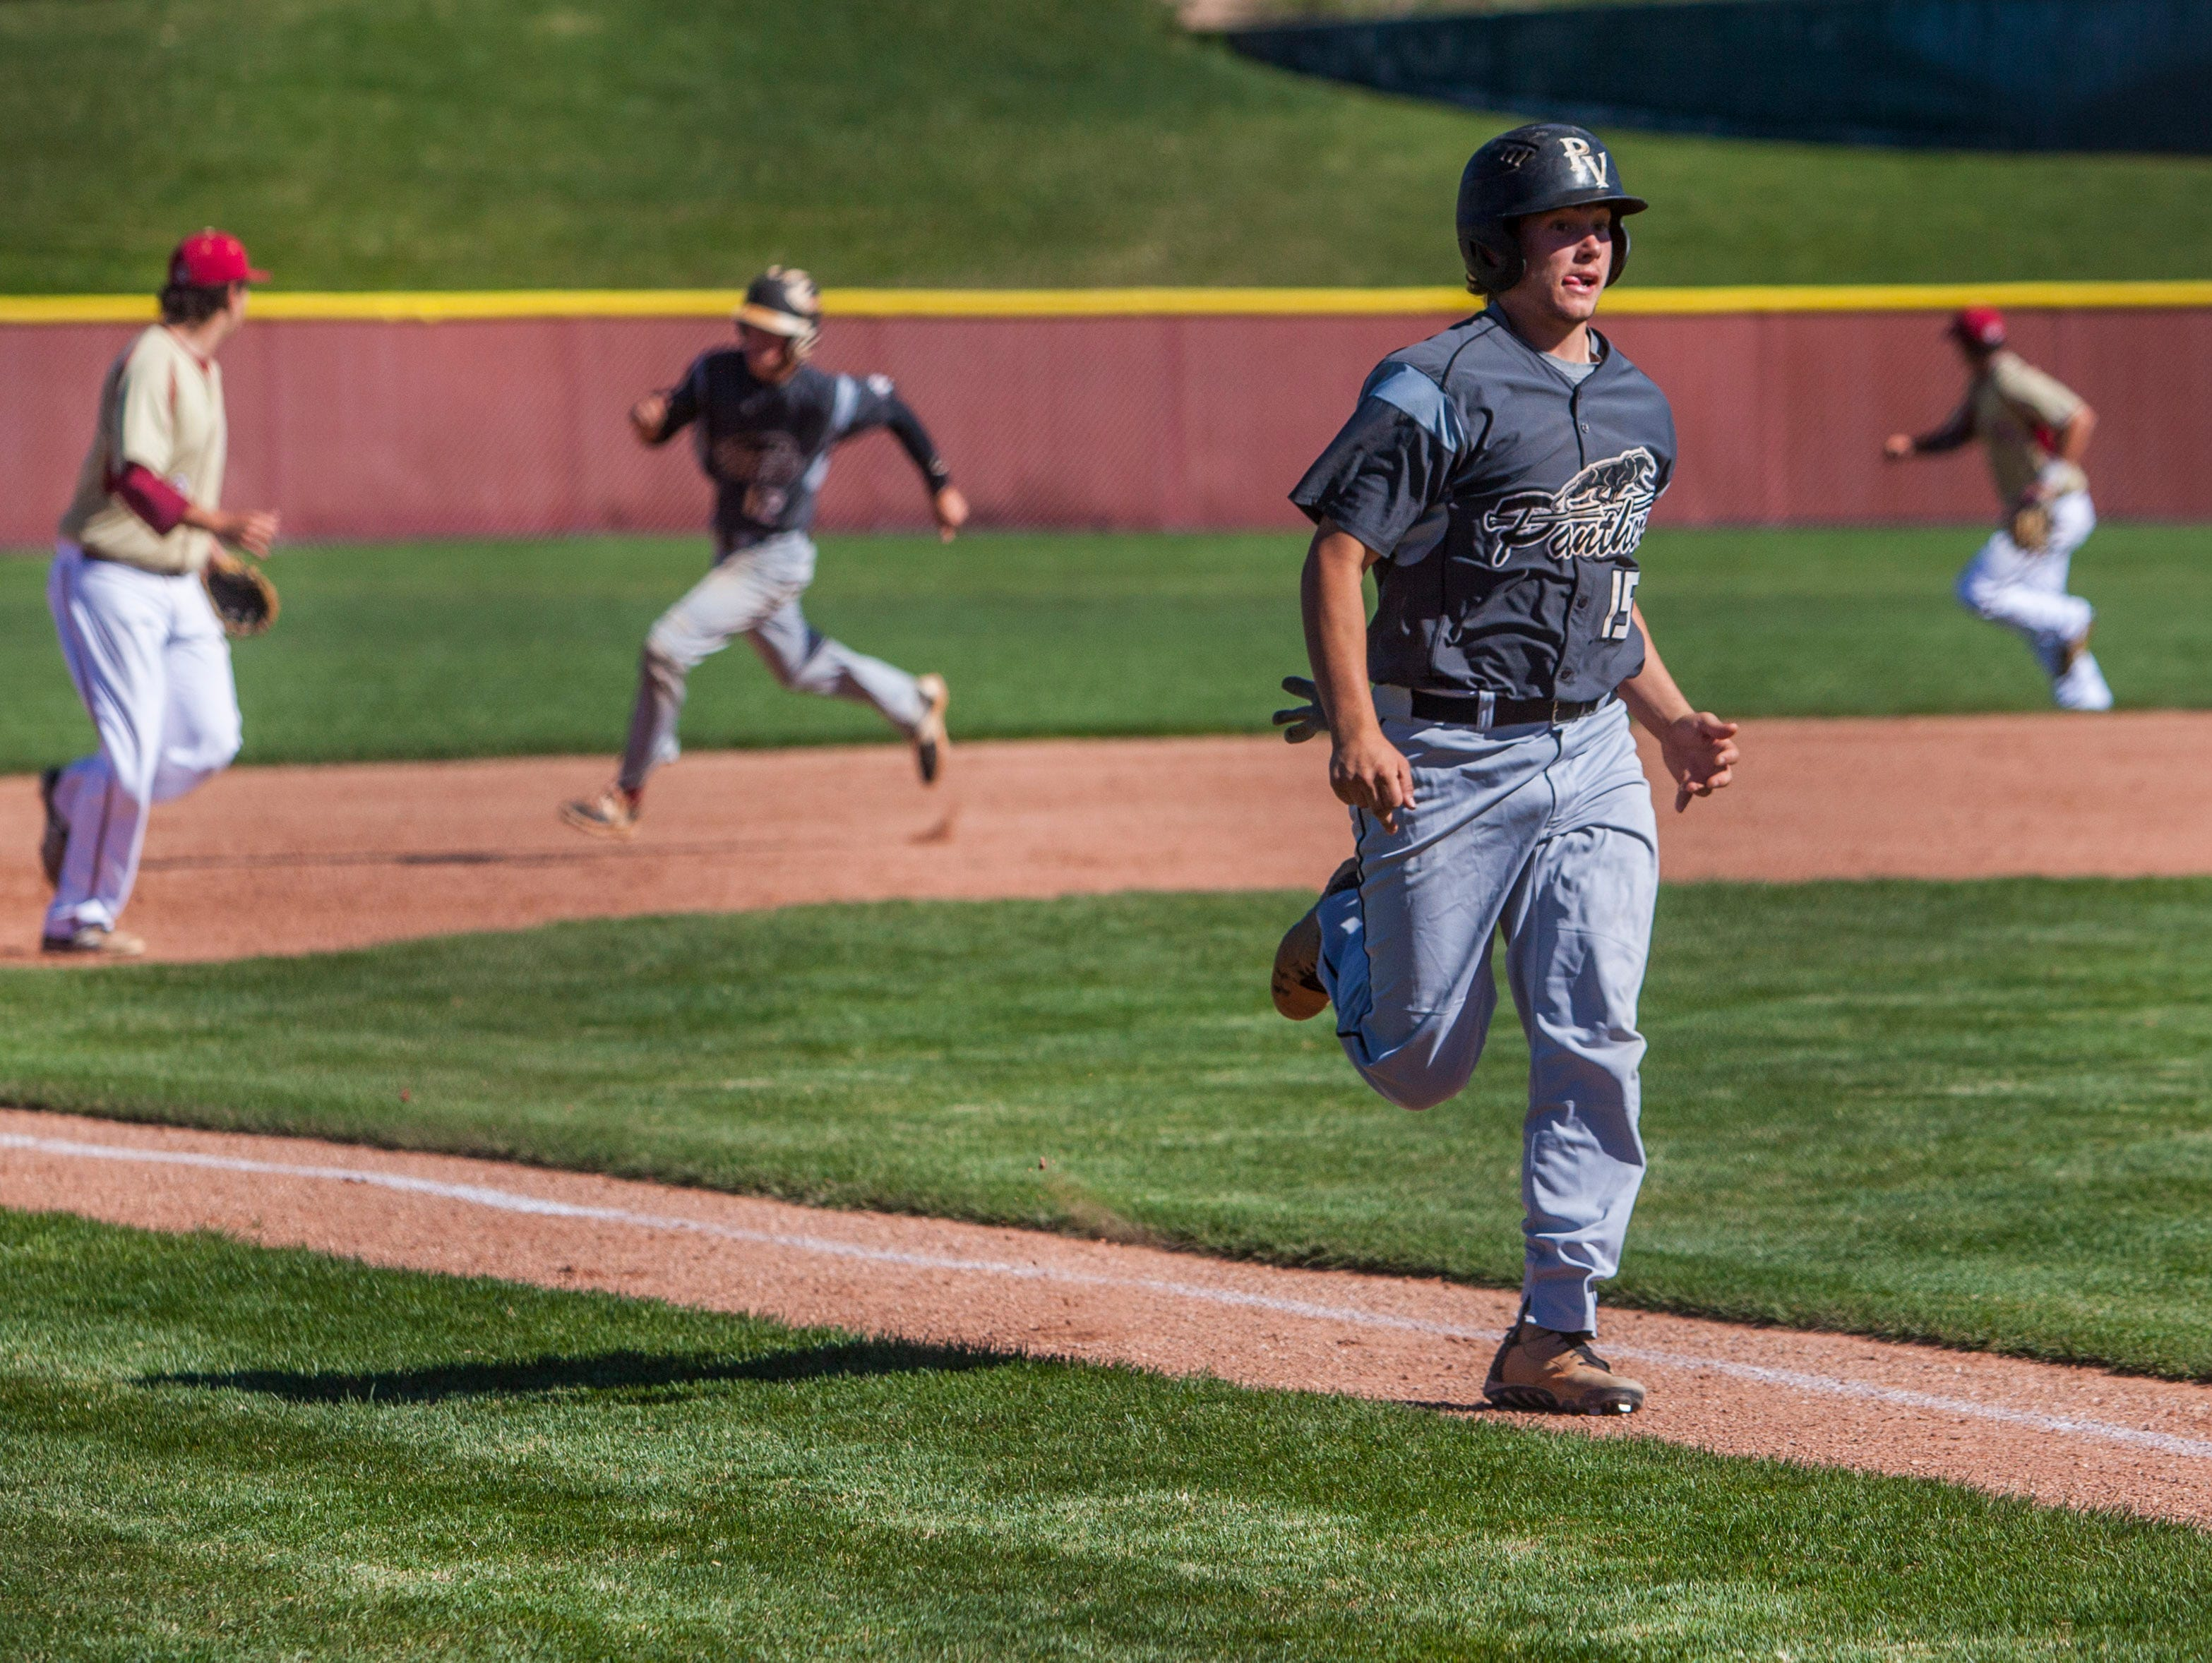 Pine View's Brooks Barney runs towards home plate during the game against Cedar, Tuesday, April 19, 2016.